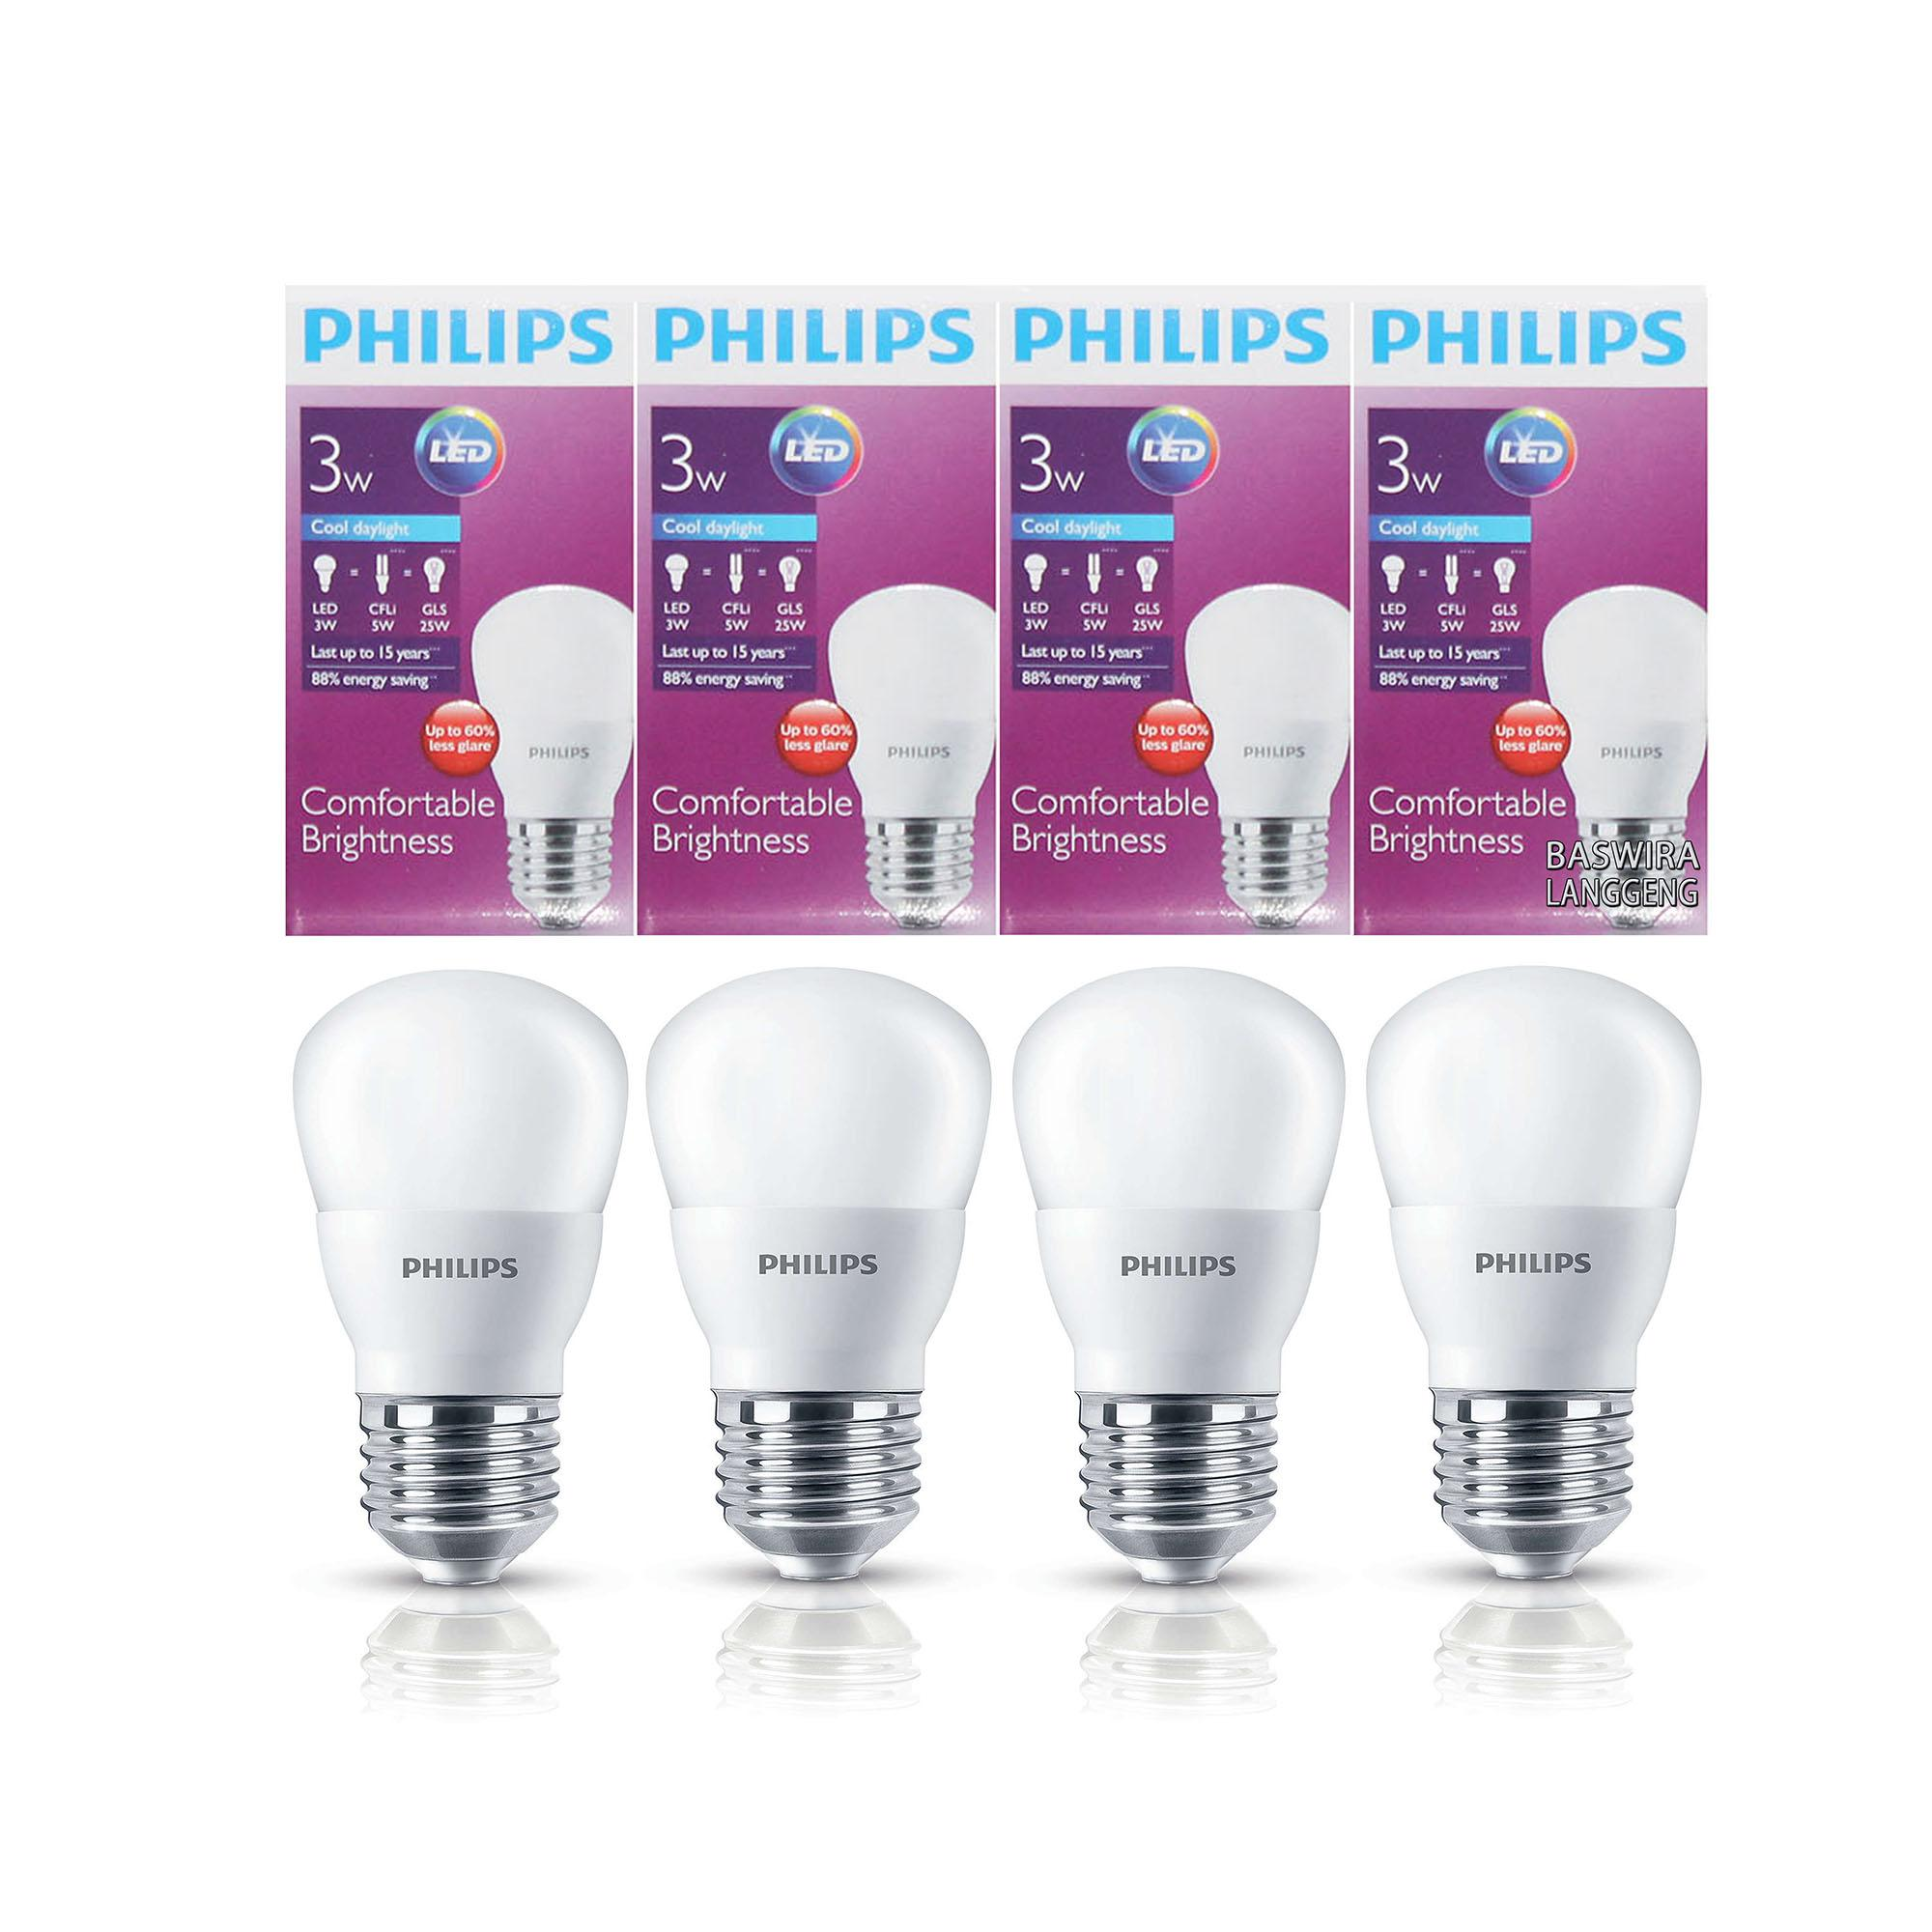 PHILIPS Lampu Led Bulb 3 Watt 3 W 3Wat 3W Putih Paket 4 Pcs